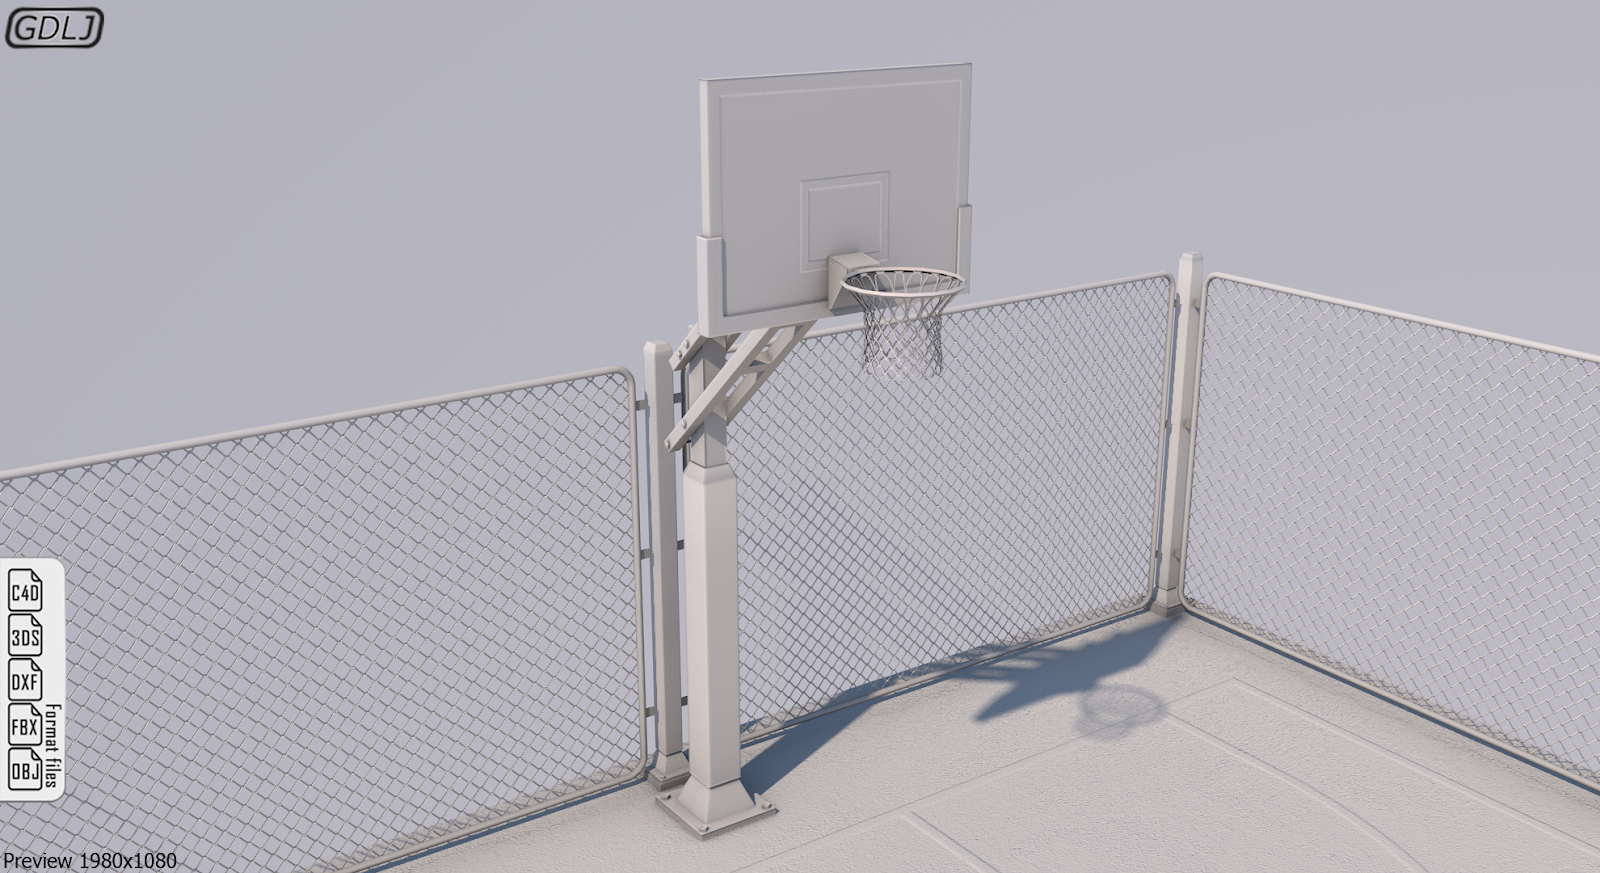 Basketball Stadium 3D Model